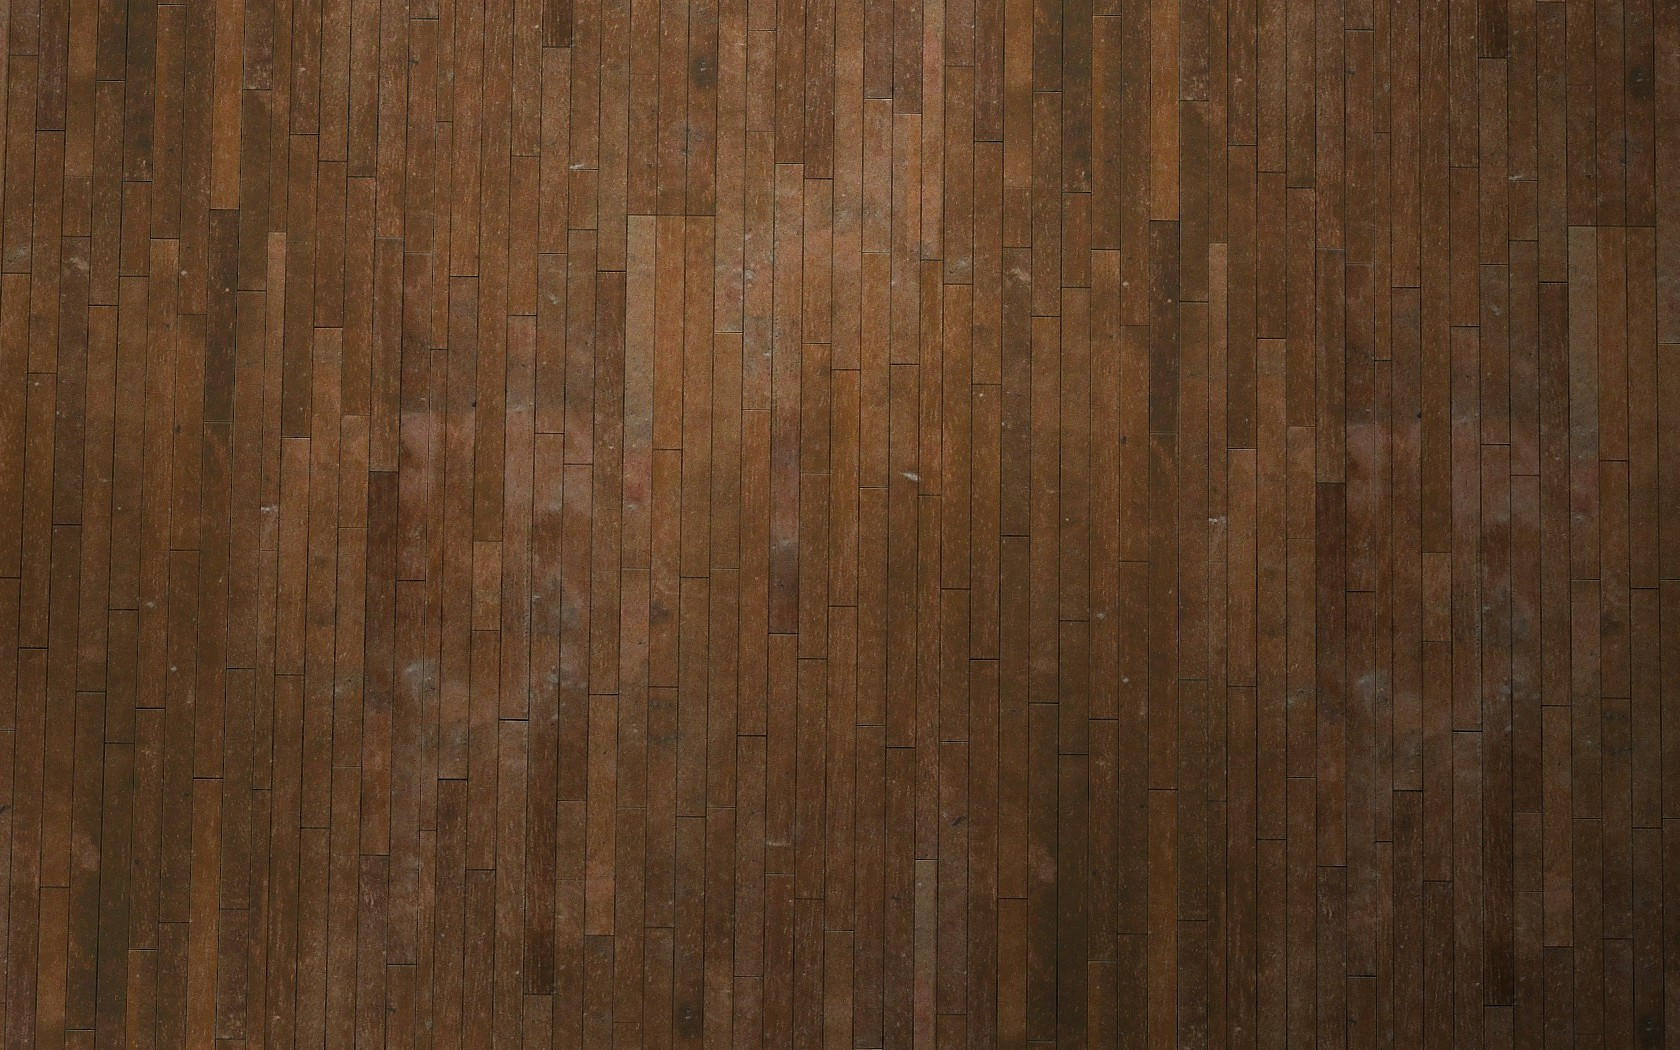 2048 aged wood panel floor gamebanana textures wood for Floor wood texture